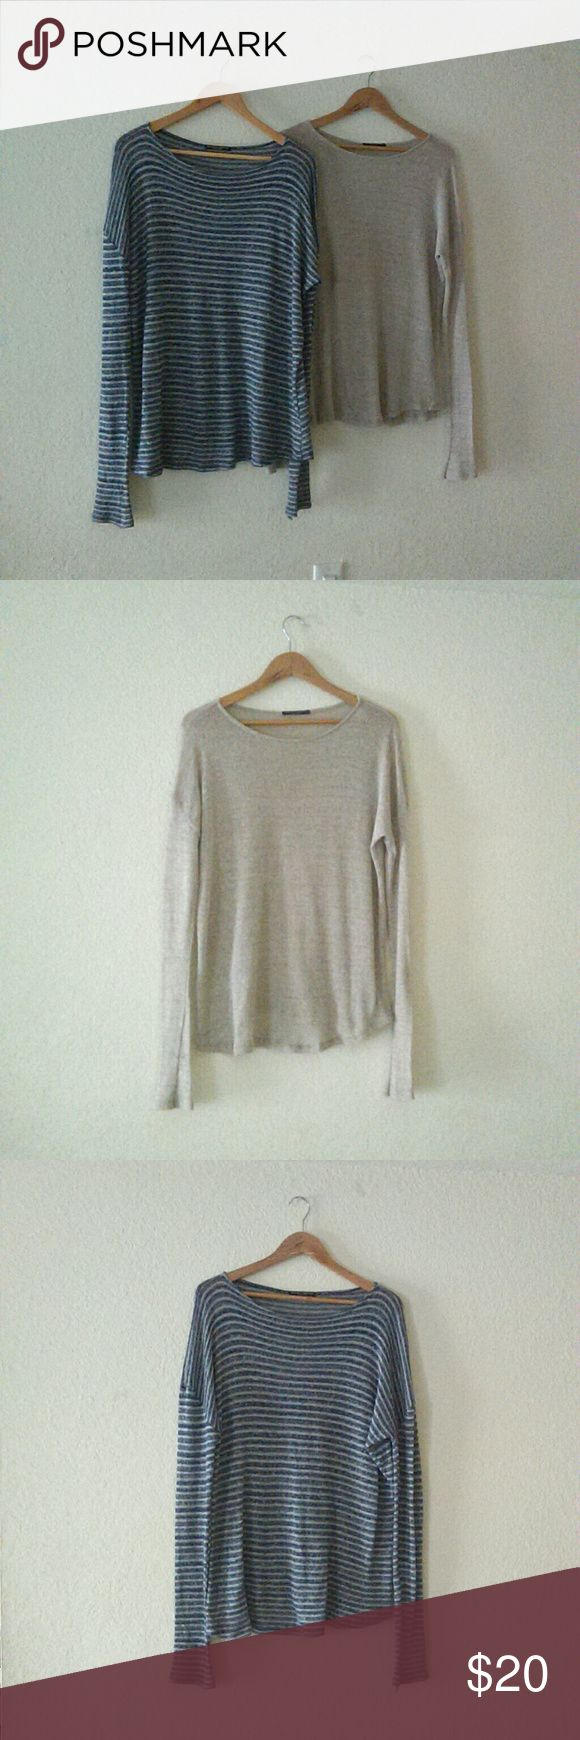 Brandy Melville Sweater Bundle Super Cute bundle of blue and cream striped and tan Brandy Melville sweaters, 55% wool but soft & light weight. Brandy Melville Sweaters